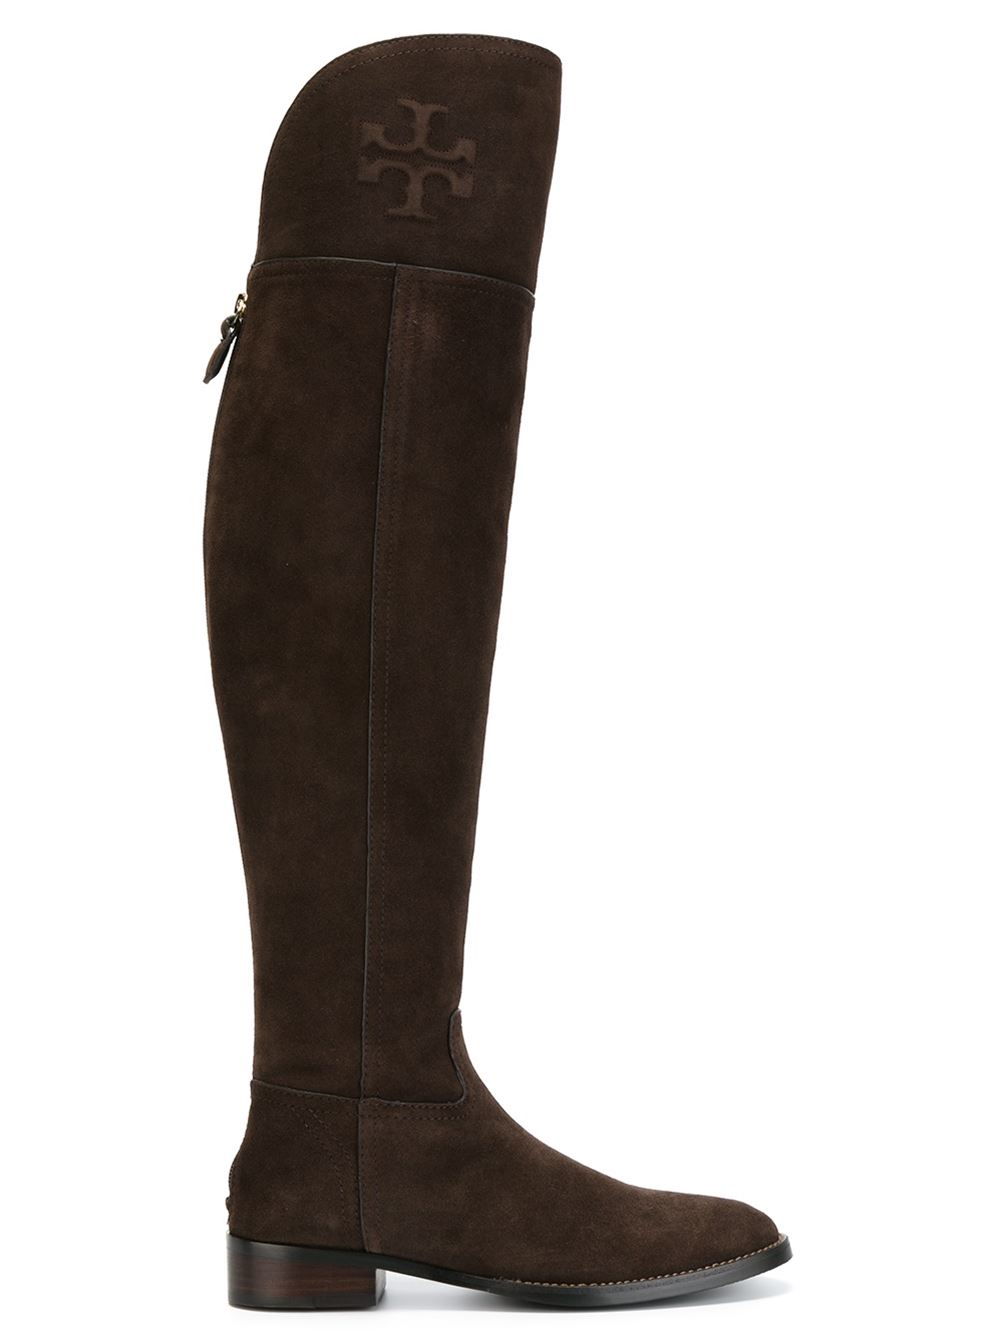 burch thigh high boots in brown lyst